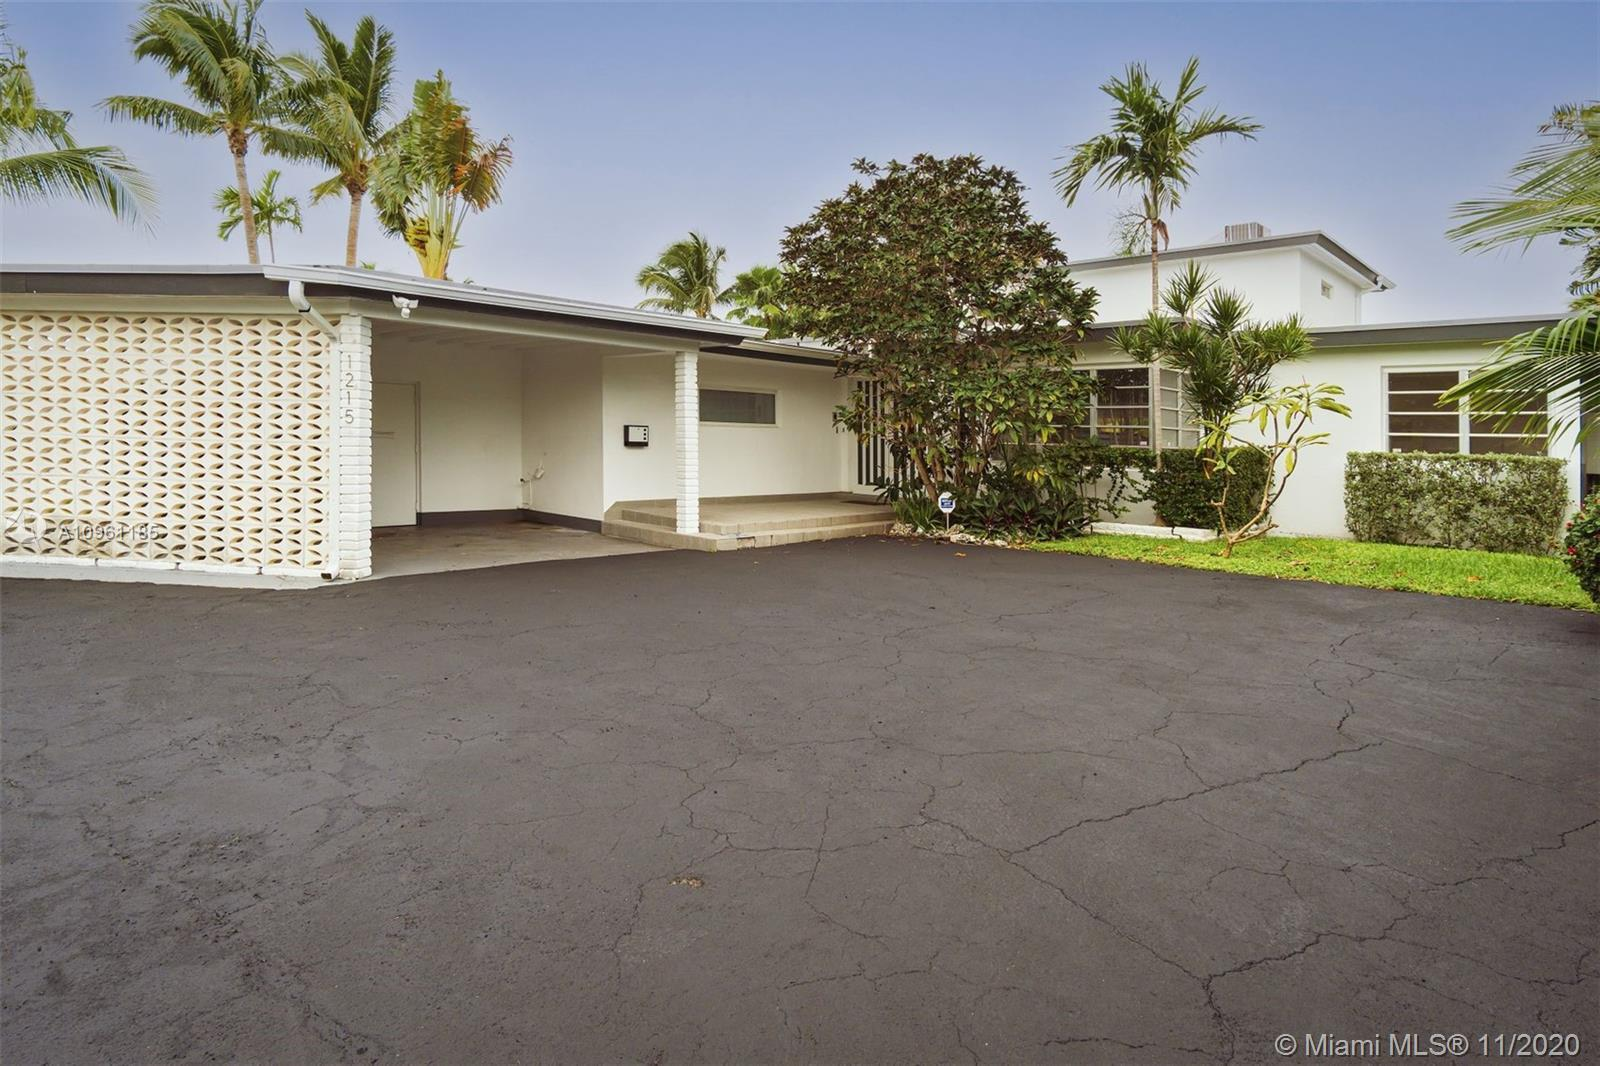 Waterfront home located in Biscayne Point, a gated community, close to the beach, schools, shops, ca